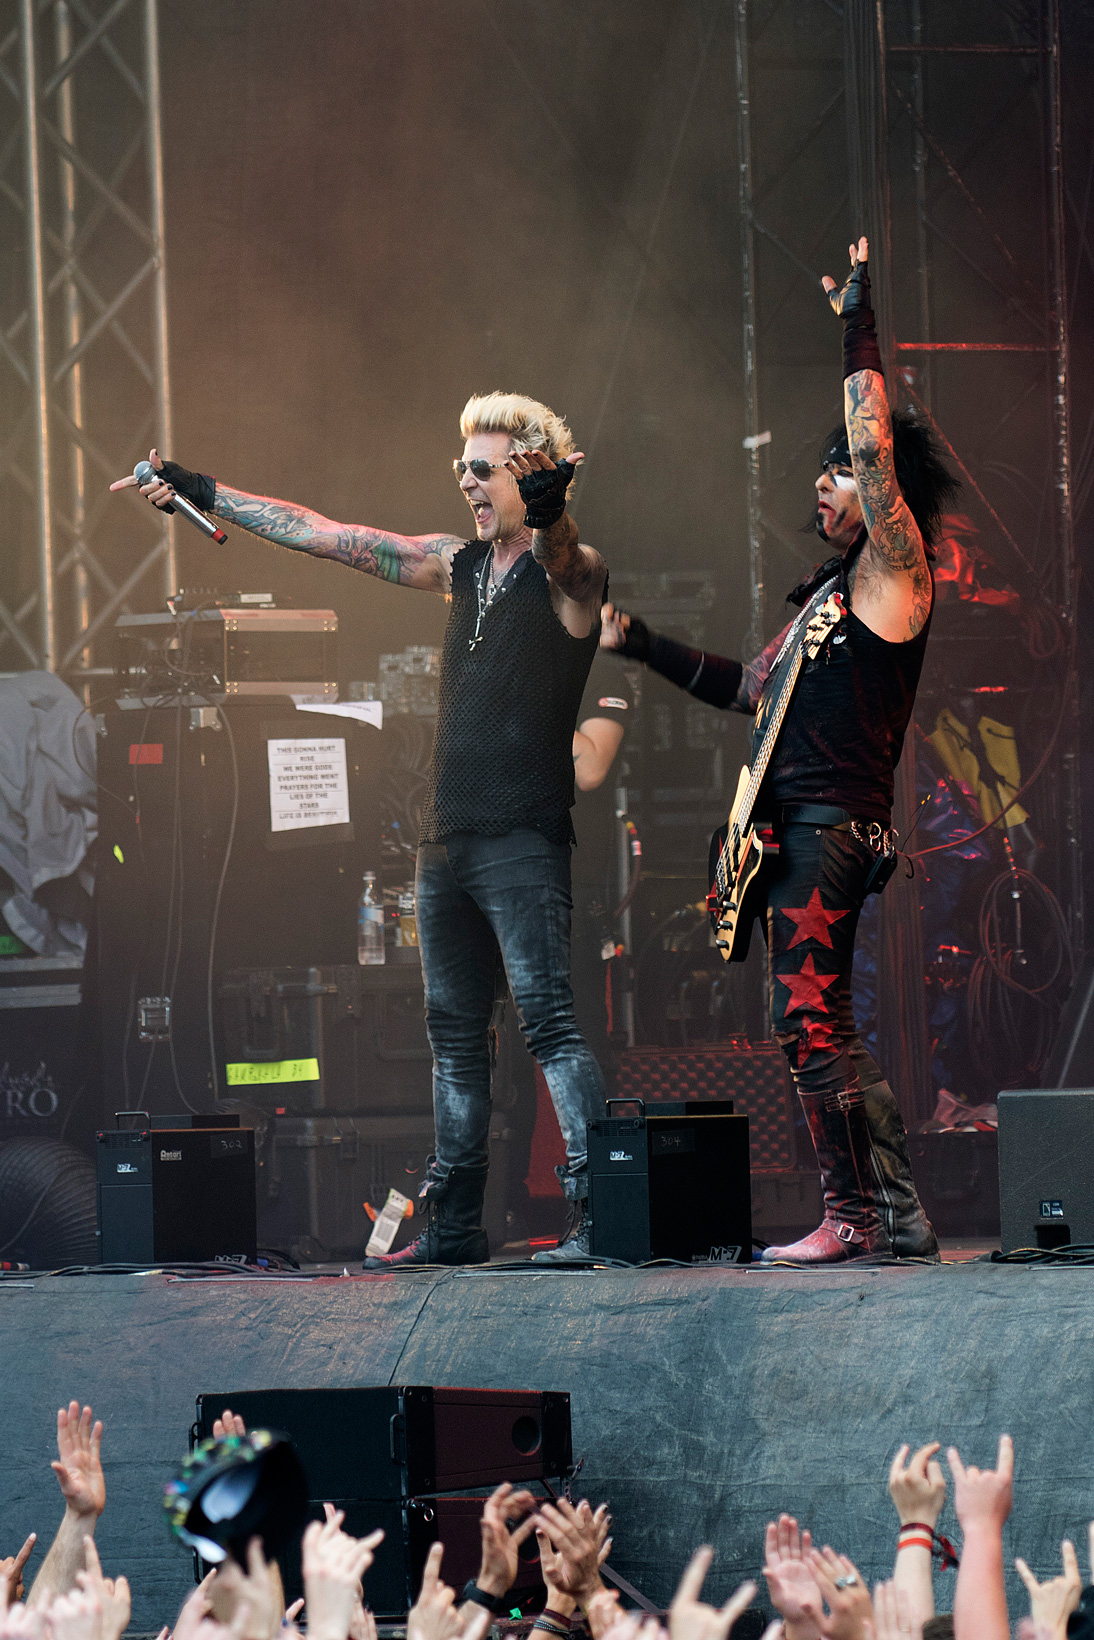 Michael James & Nikki Sixx, Sixx:A.M.